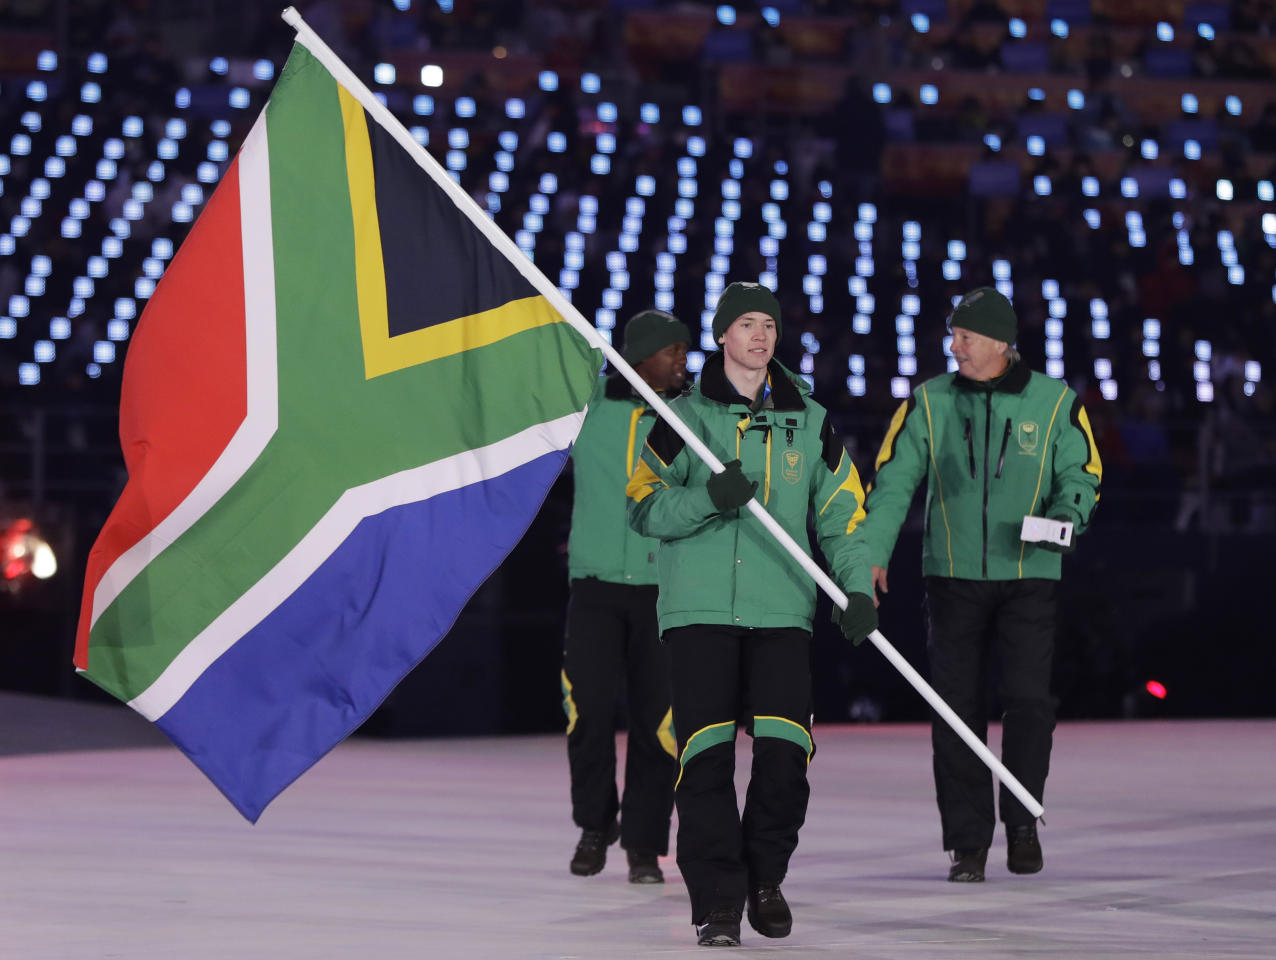 <p>Gold:$37,000 USD<br /> Silver:$19,000 USD<br /> Bronze:$7,000 USD<br /> Apline skier Connor Wilson is the sole athlete competing for South Africa at this year's Olympic Games. He was the the flag bearer for the country as well, naturally.<br /> (AP Photo/Petr David Josek) </p>